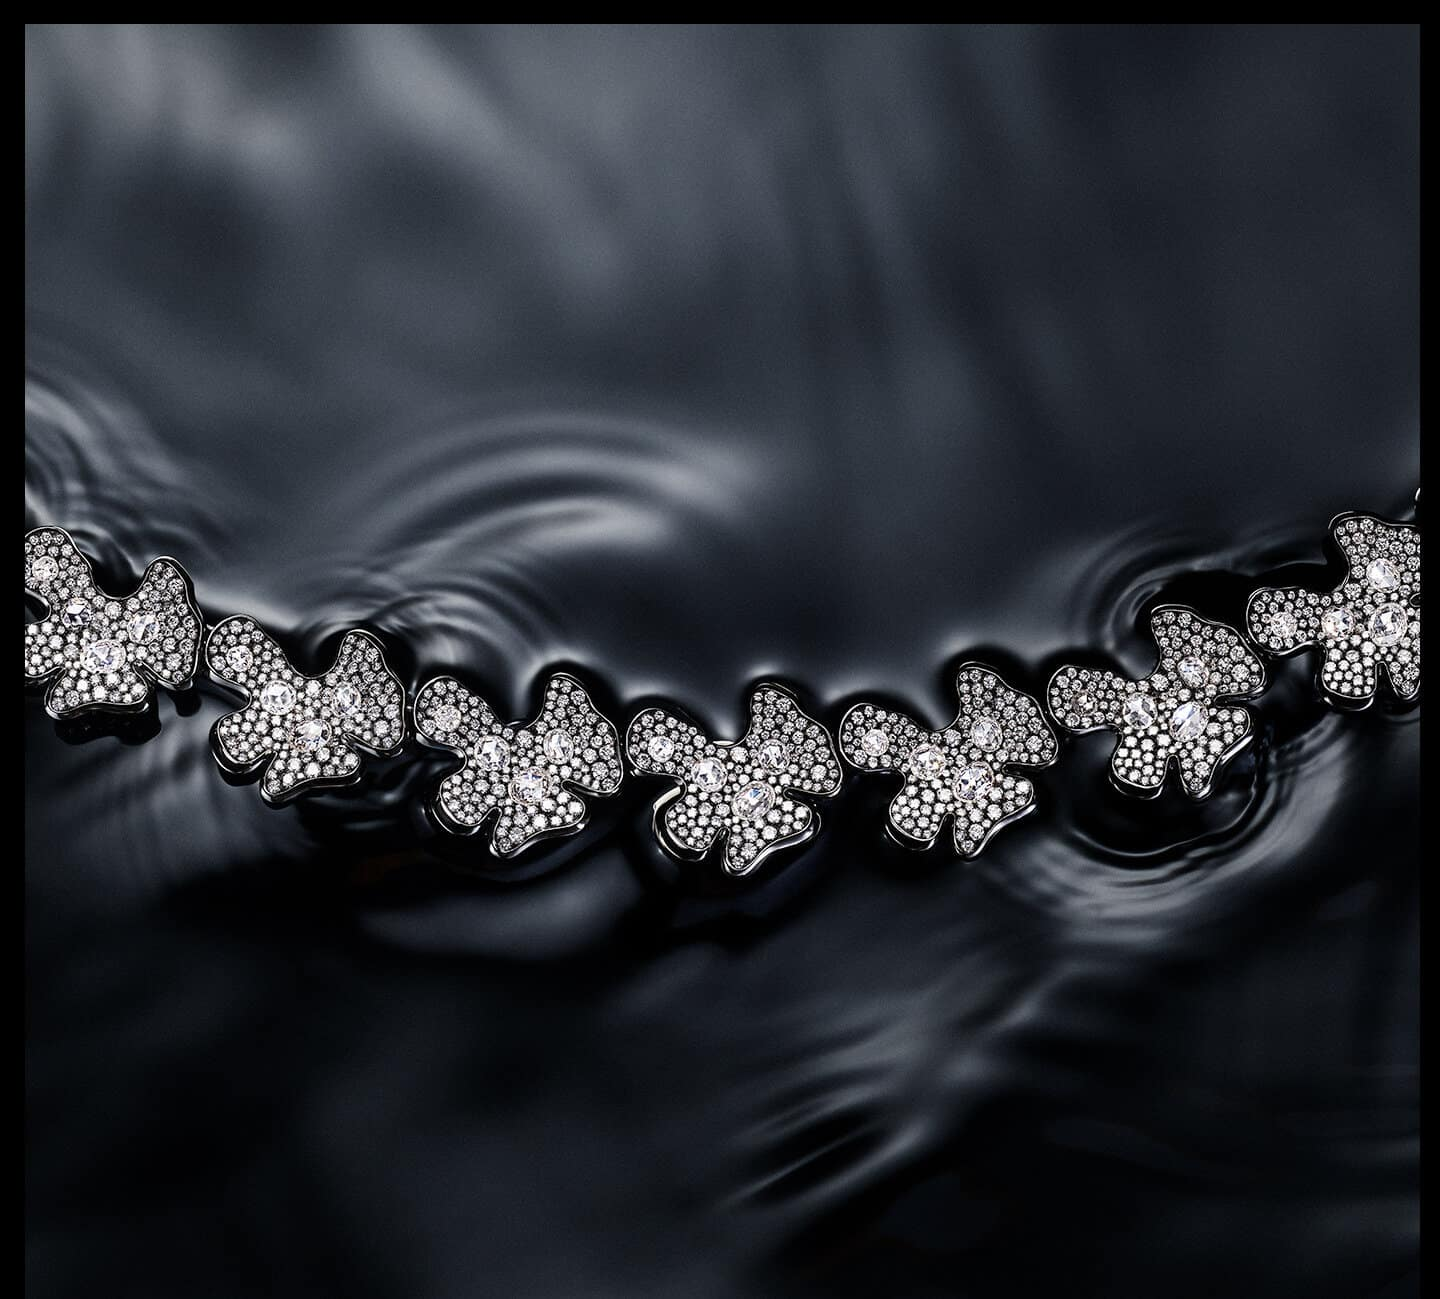 A color photo shows a David Yurman High Jewelry Petals necklace floating on water. Ripples surround the necklace, which is crafted from lily-pad-shaped stations of rhodium-plated 18K white gold encrusted with brilliant- and rose-cut white diamonds.